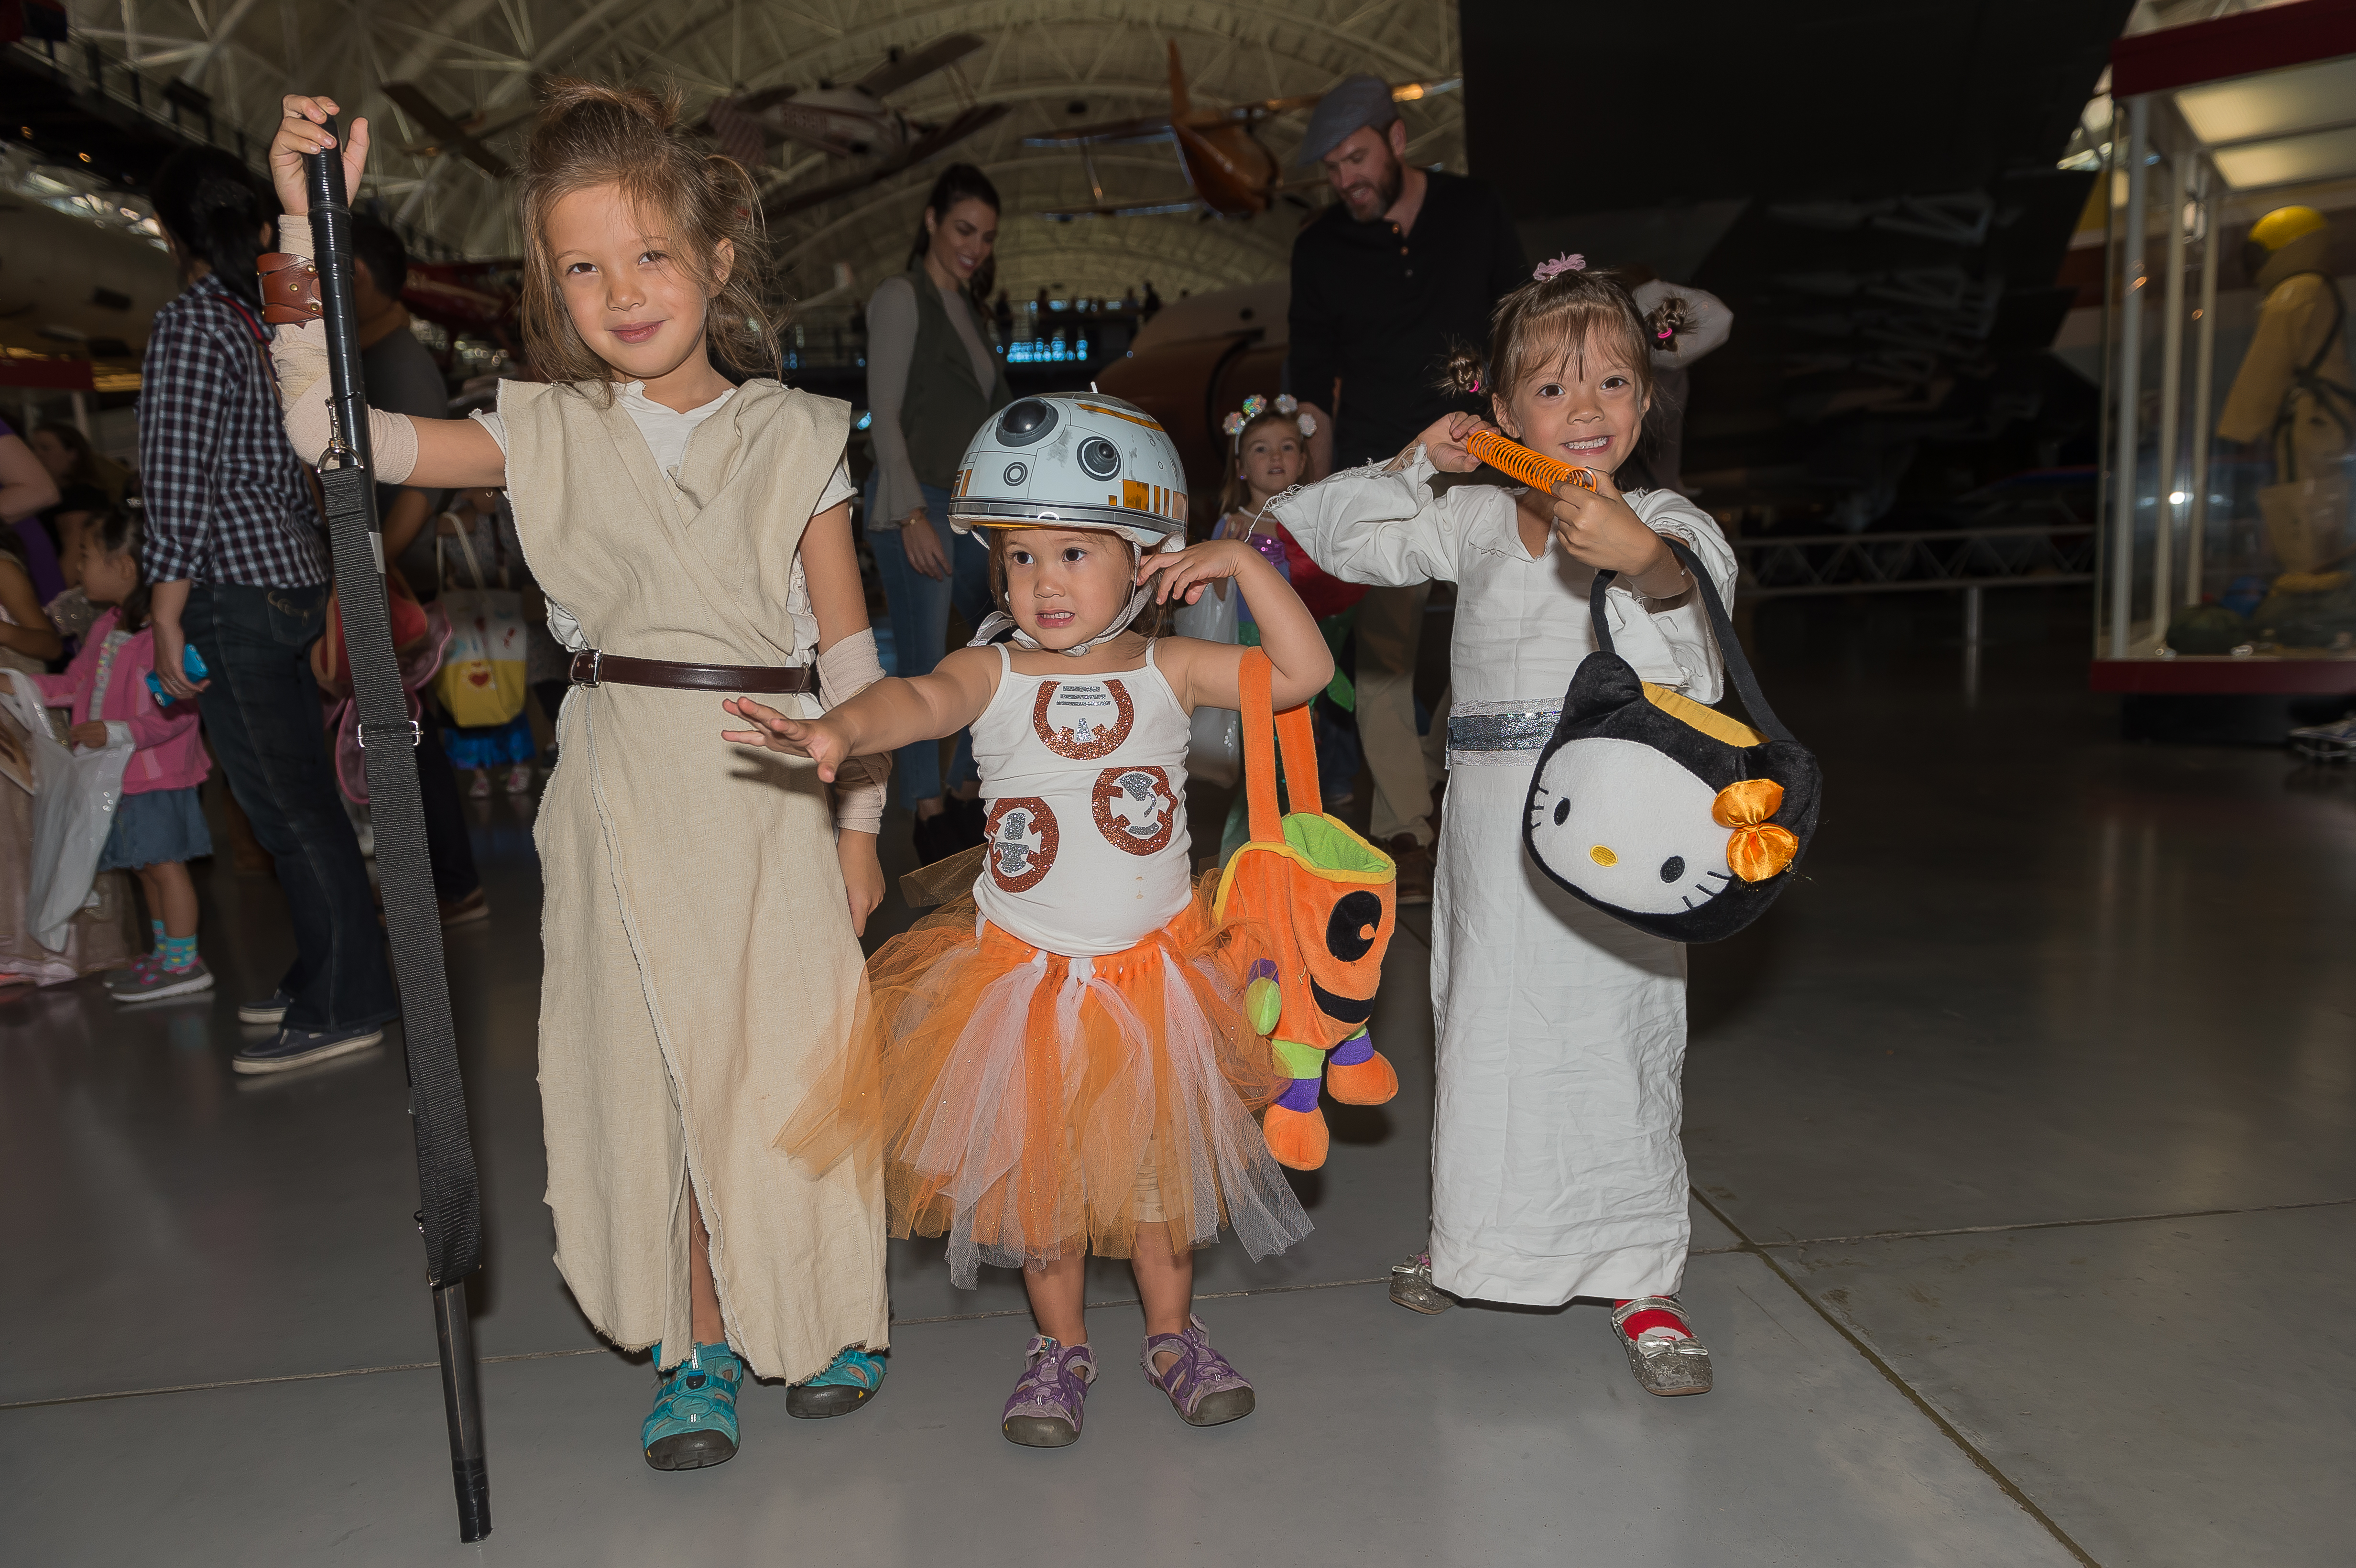 Visitors dressed in Star Wars costumes